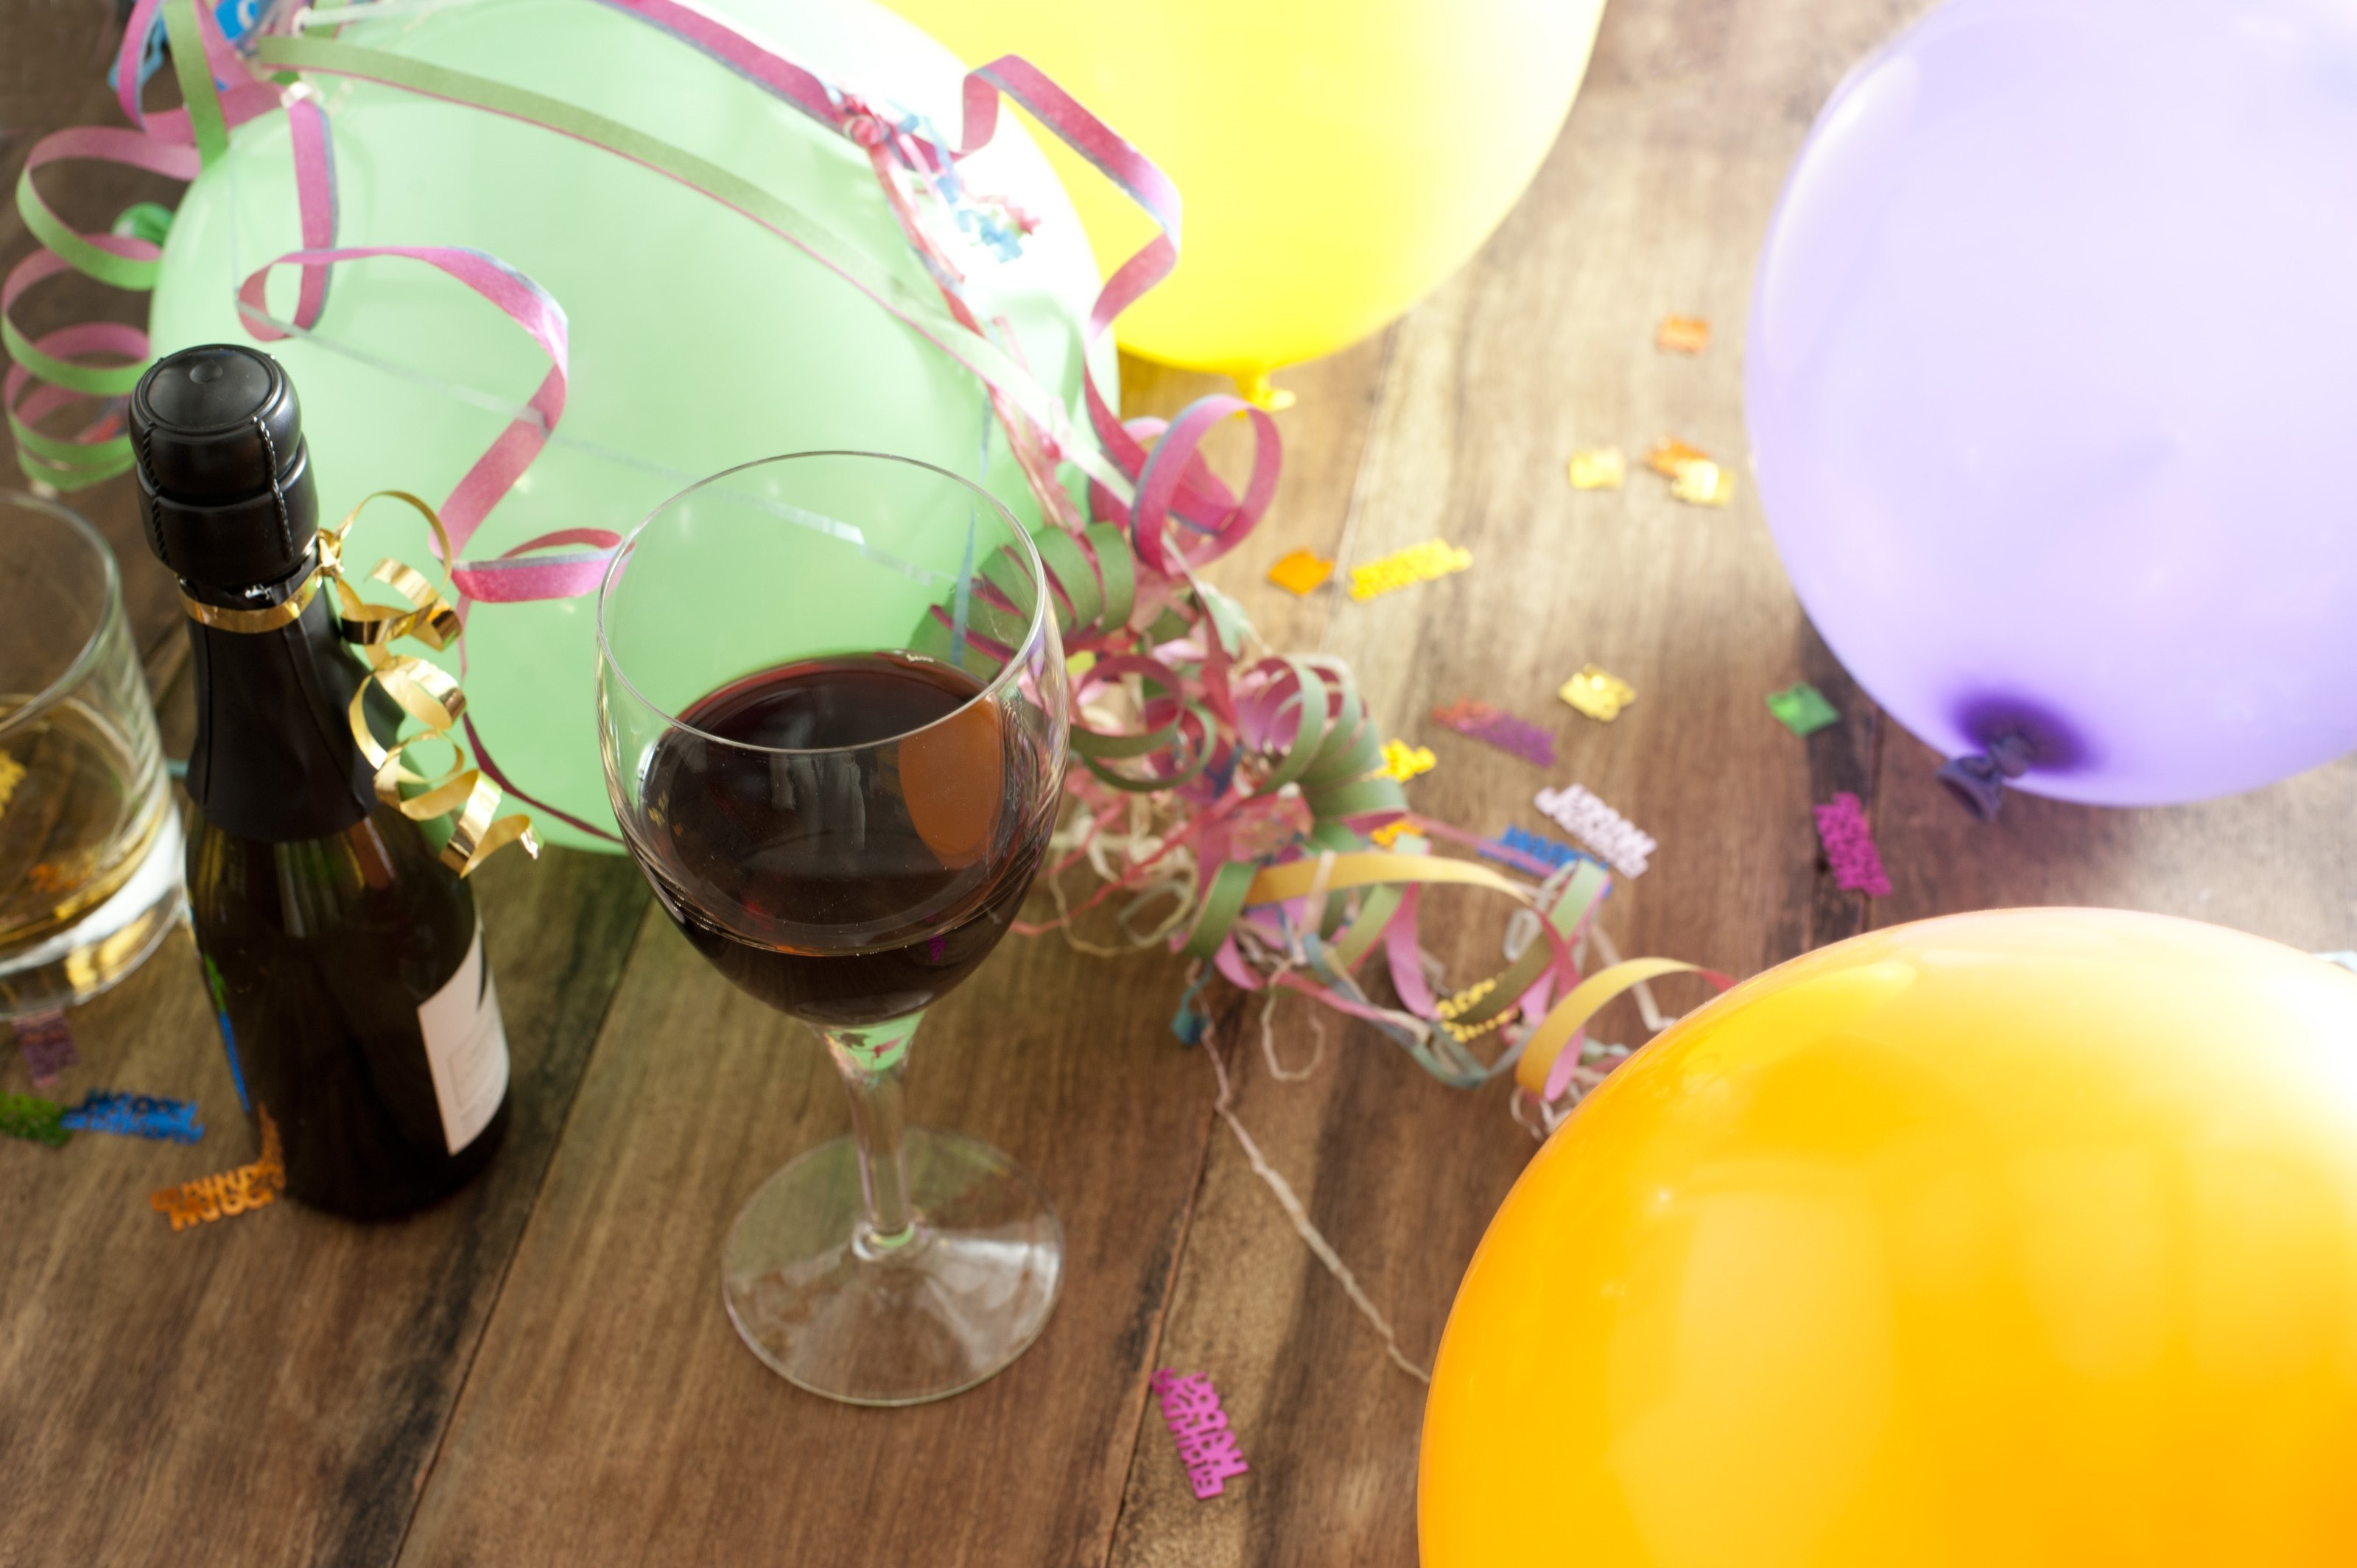 Free Image Of Birthday Decorations With Glass Red Wine